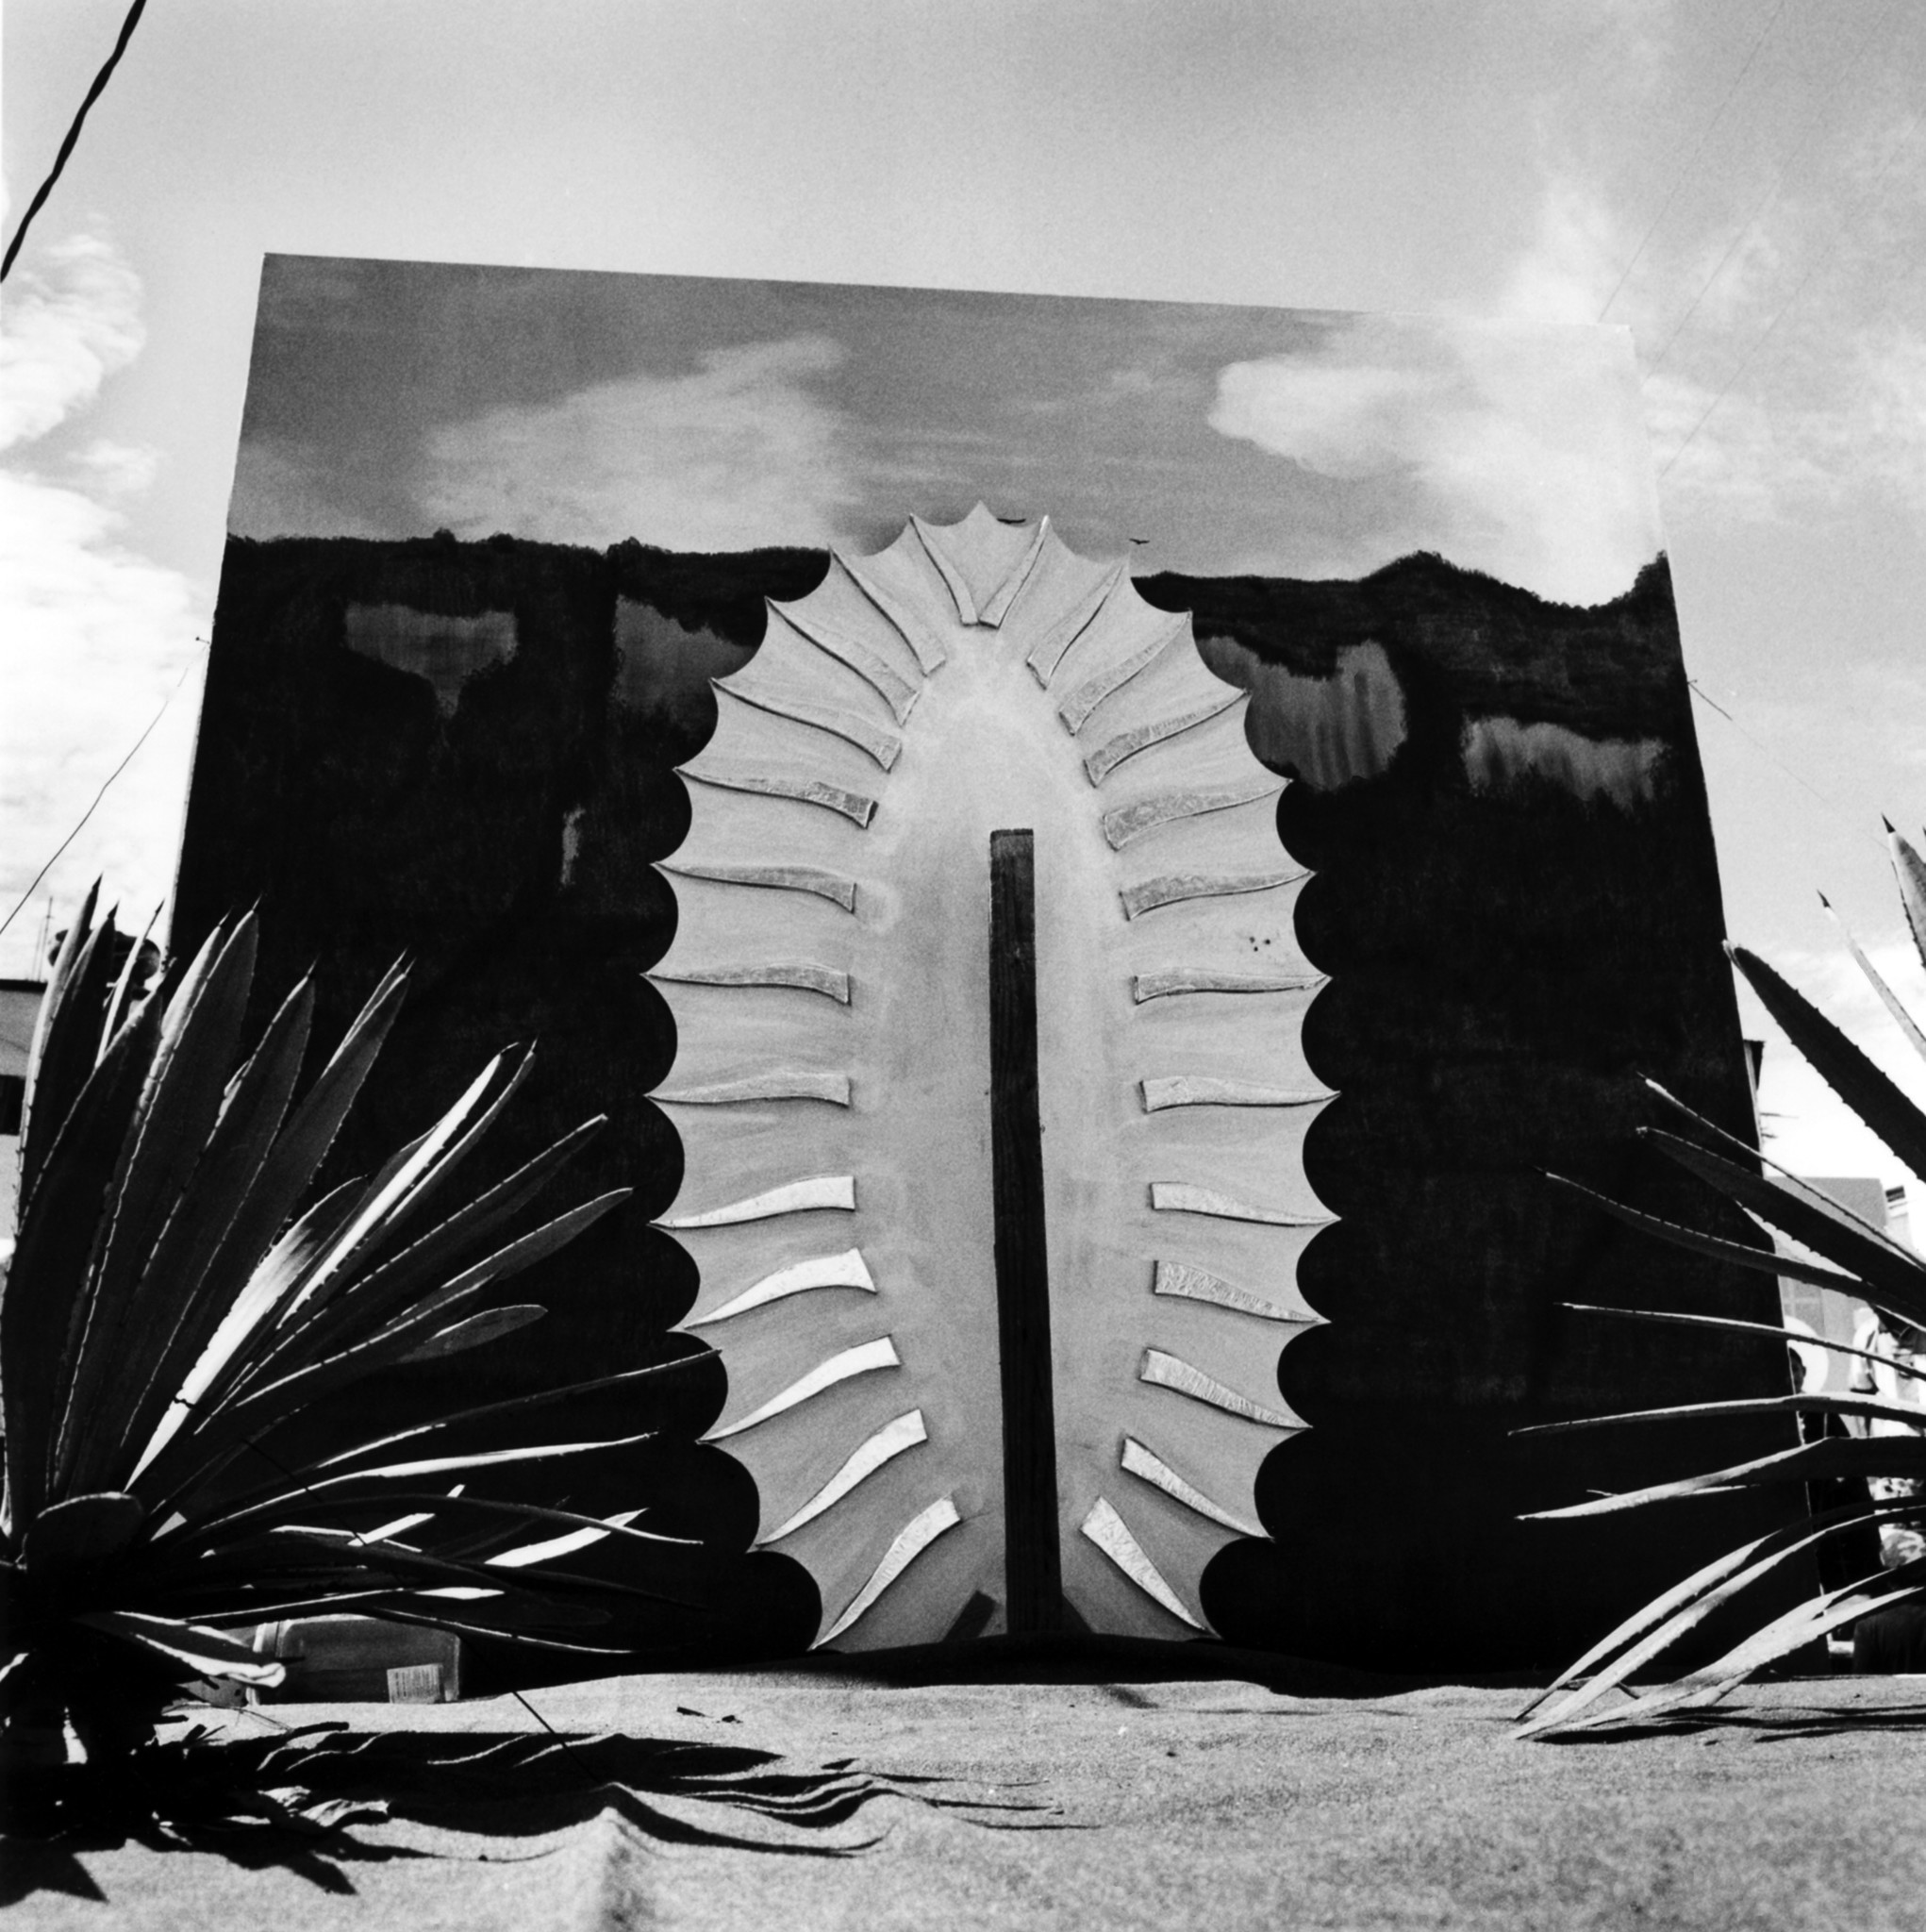 """Virgen de Guadalupe, Chalma, Mexico,"" 2007, by Graciela Iturbide, captures a monument missing its Virgin."